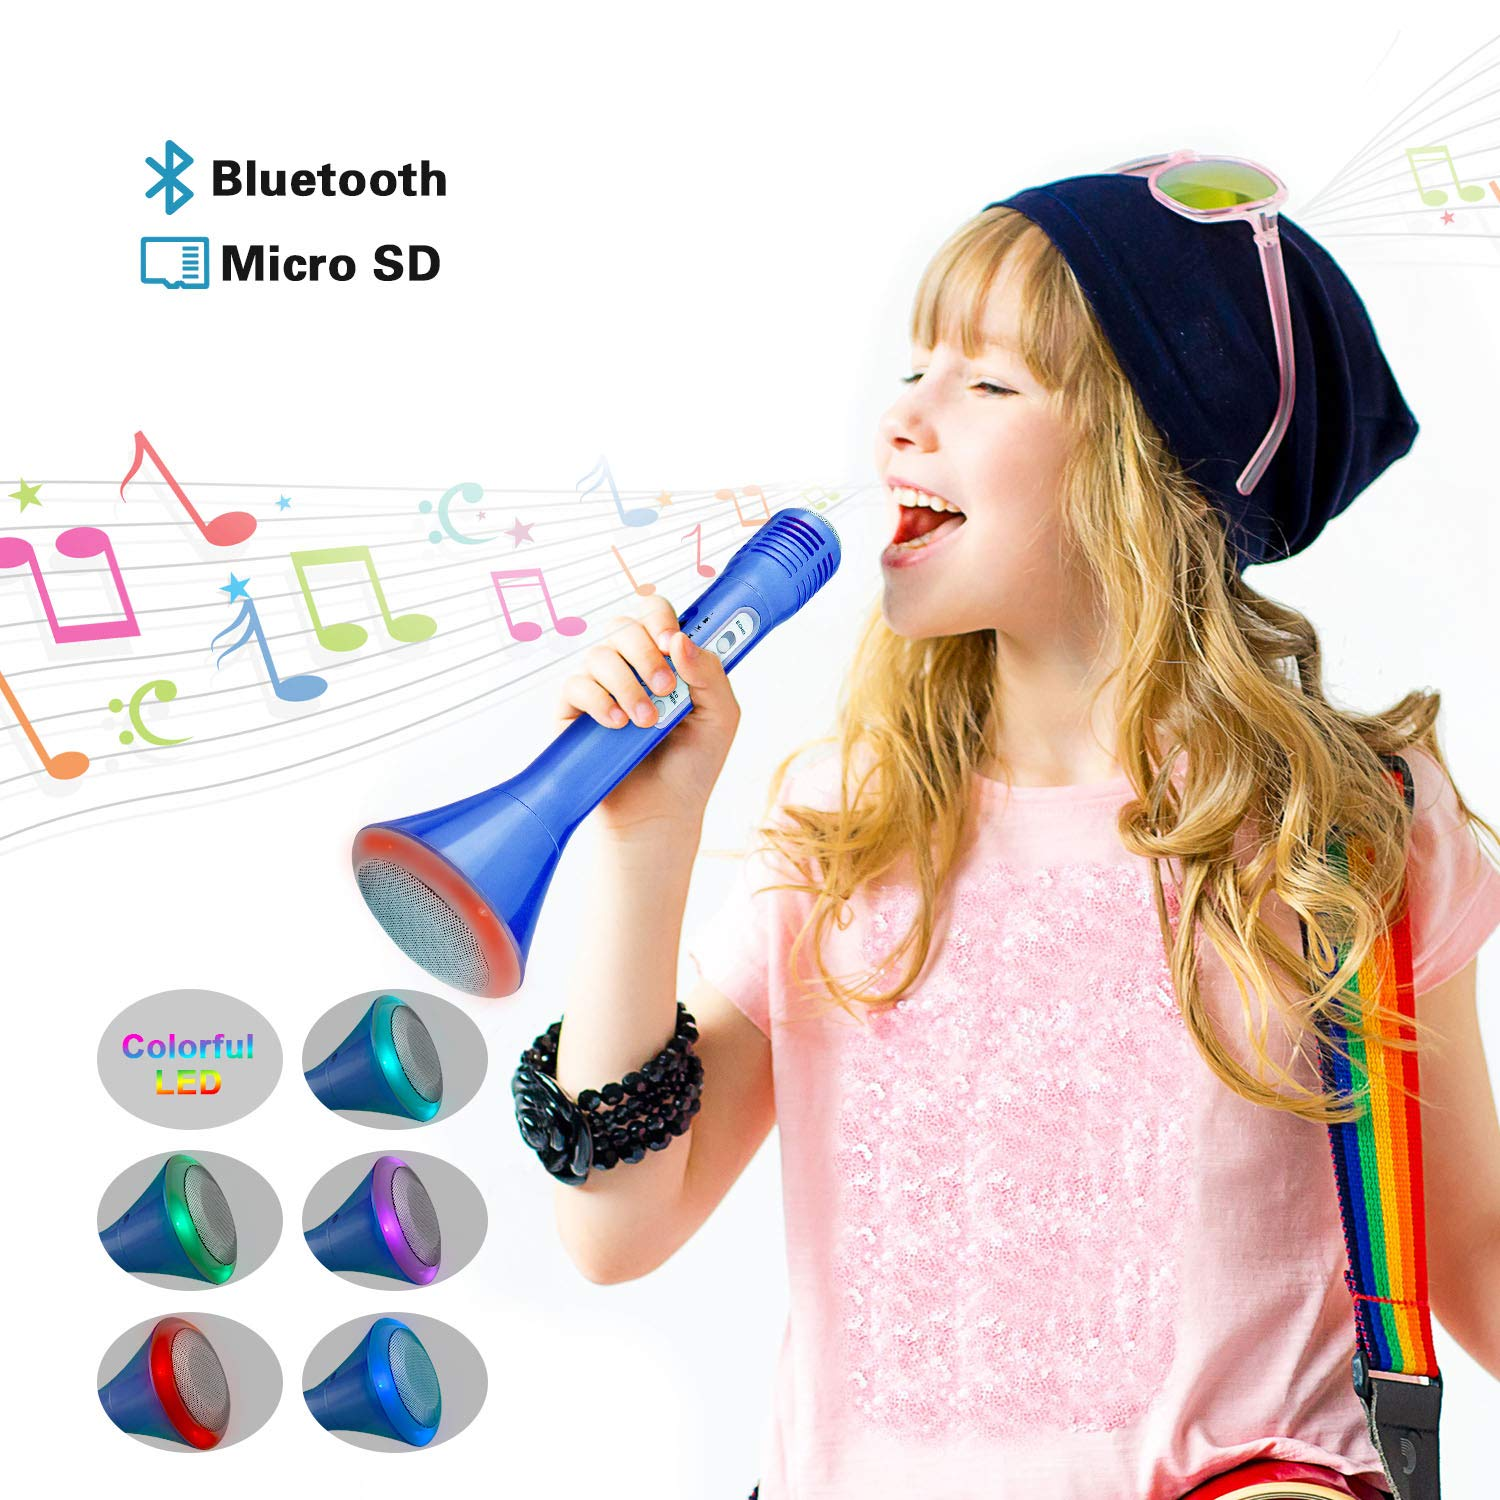 Toys for 2-15 Year Old Boys, Wireless Bluetooth Karaoke for Boy Gifts Age 2-15 Cool Toys for 2-15 Year Old Boys Microphone Christmas New Gifts for 2-15 Year Old Boys Stocking Fillers Blue LDMKF02 by Dreamingbox